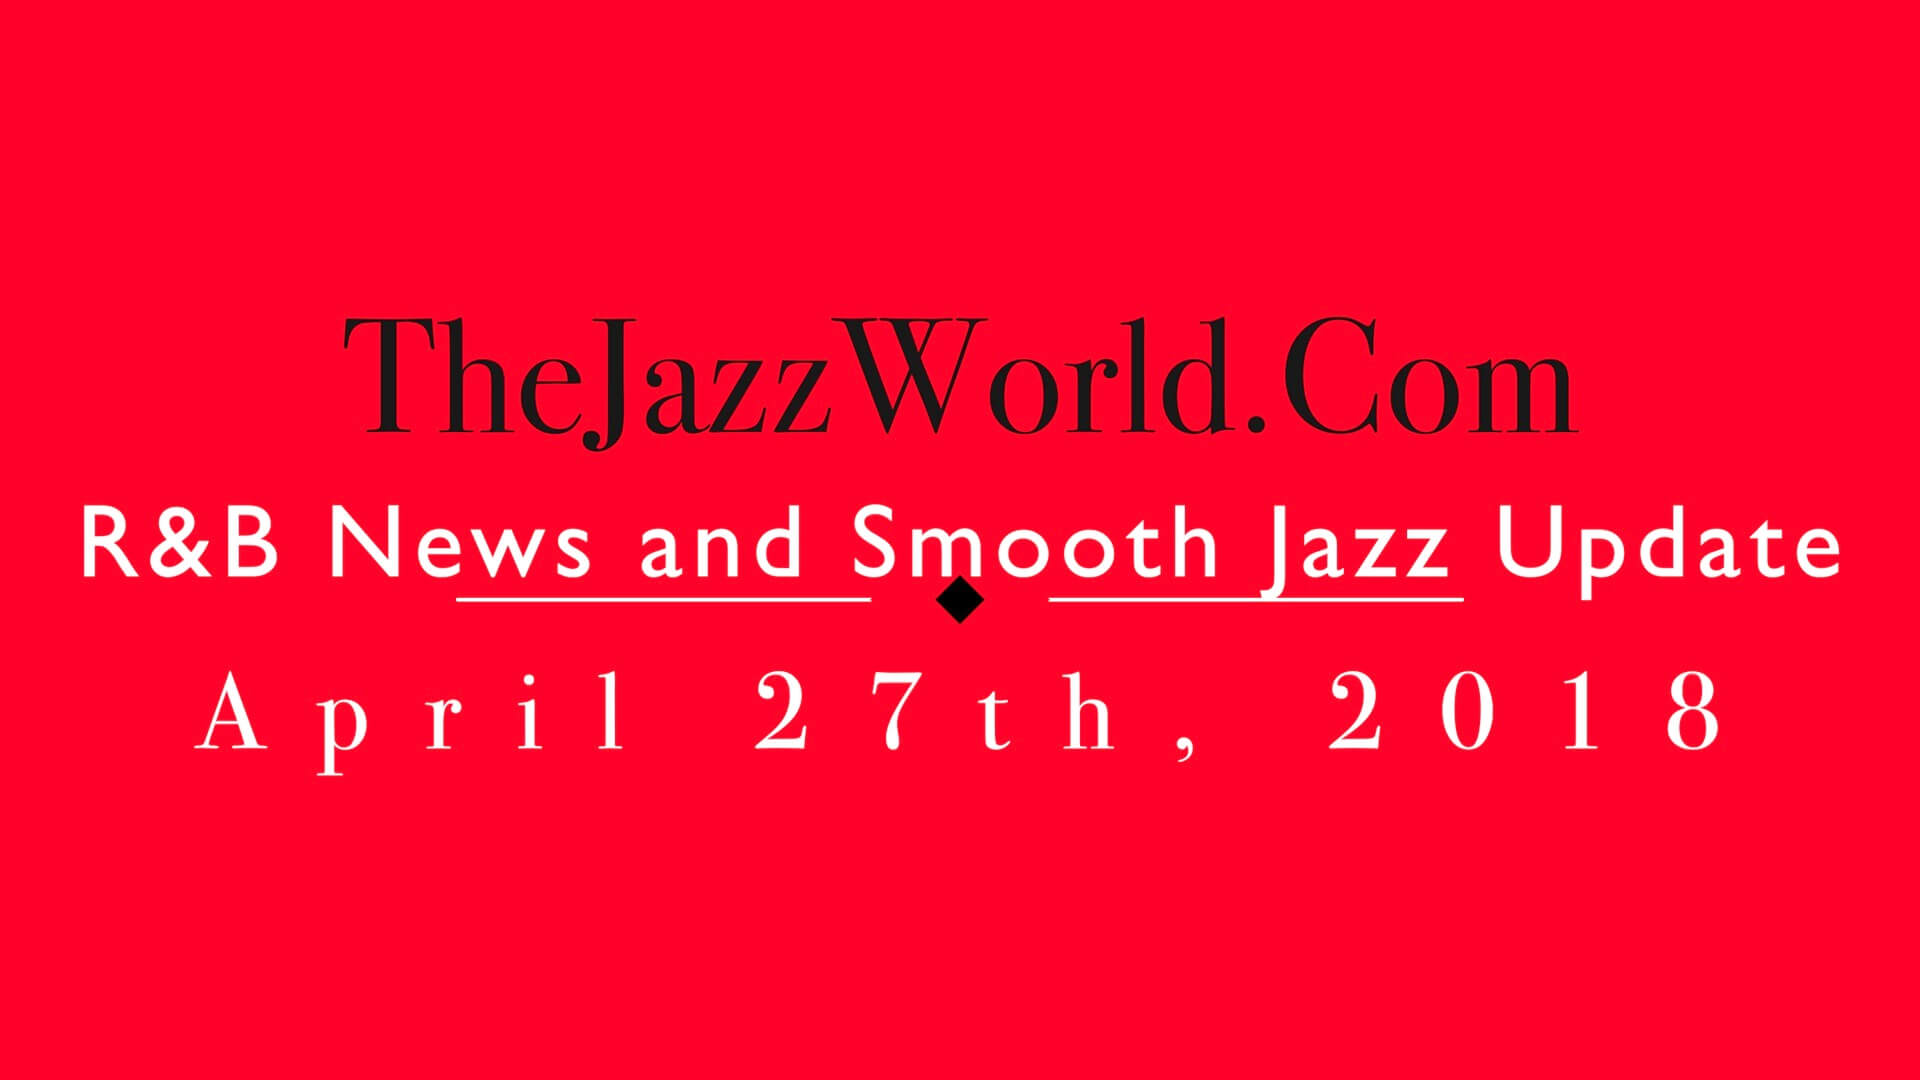 Latest R&B News and Smooth Jazz Update April 27th